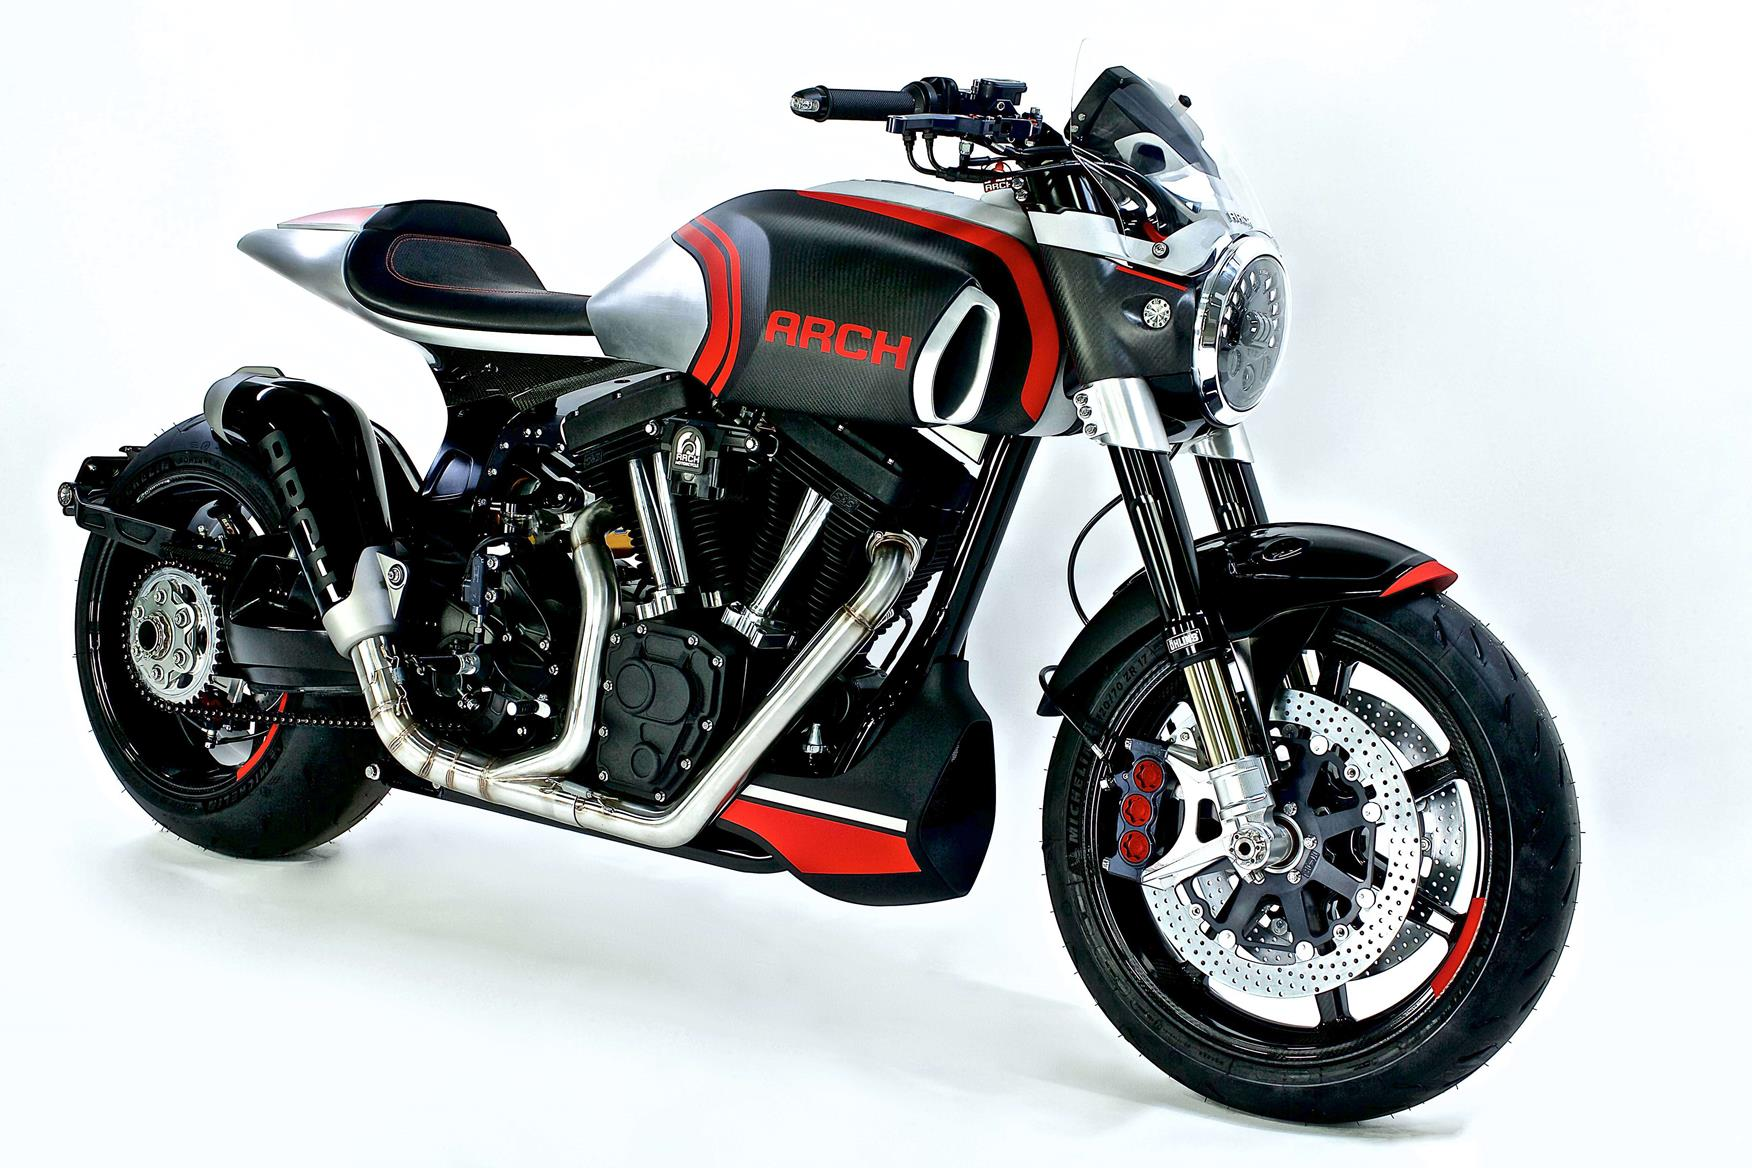 American Honda Motor Company >> Arch Motorcycles reveal two new models | MCN